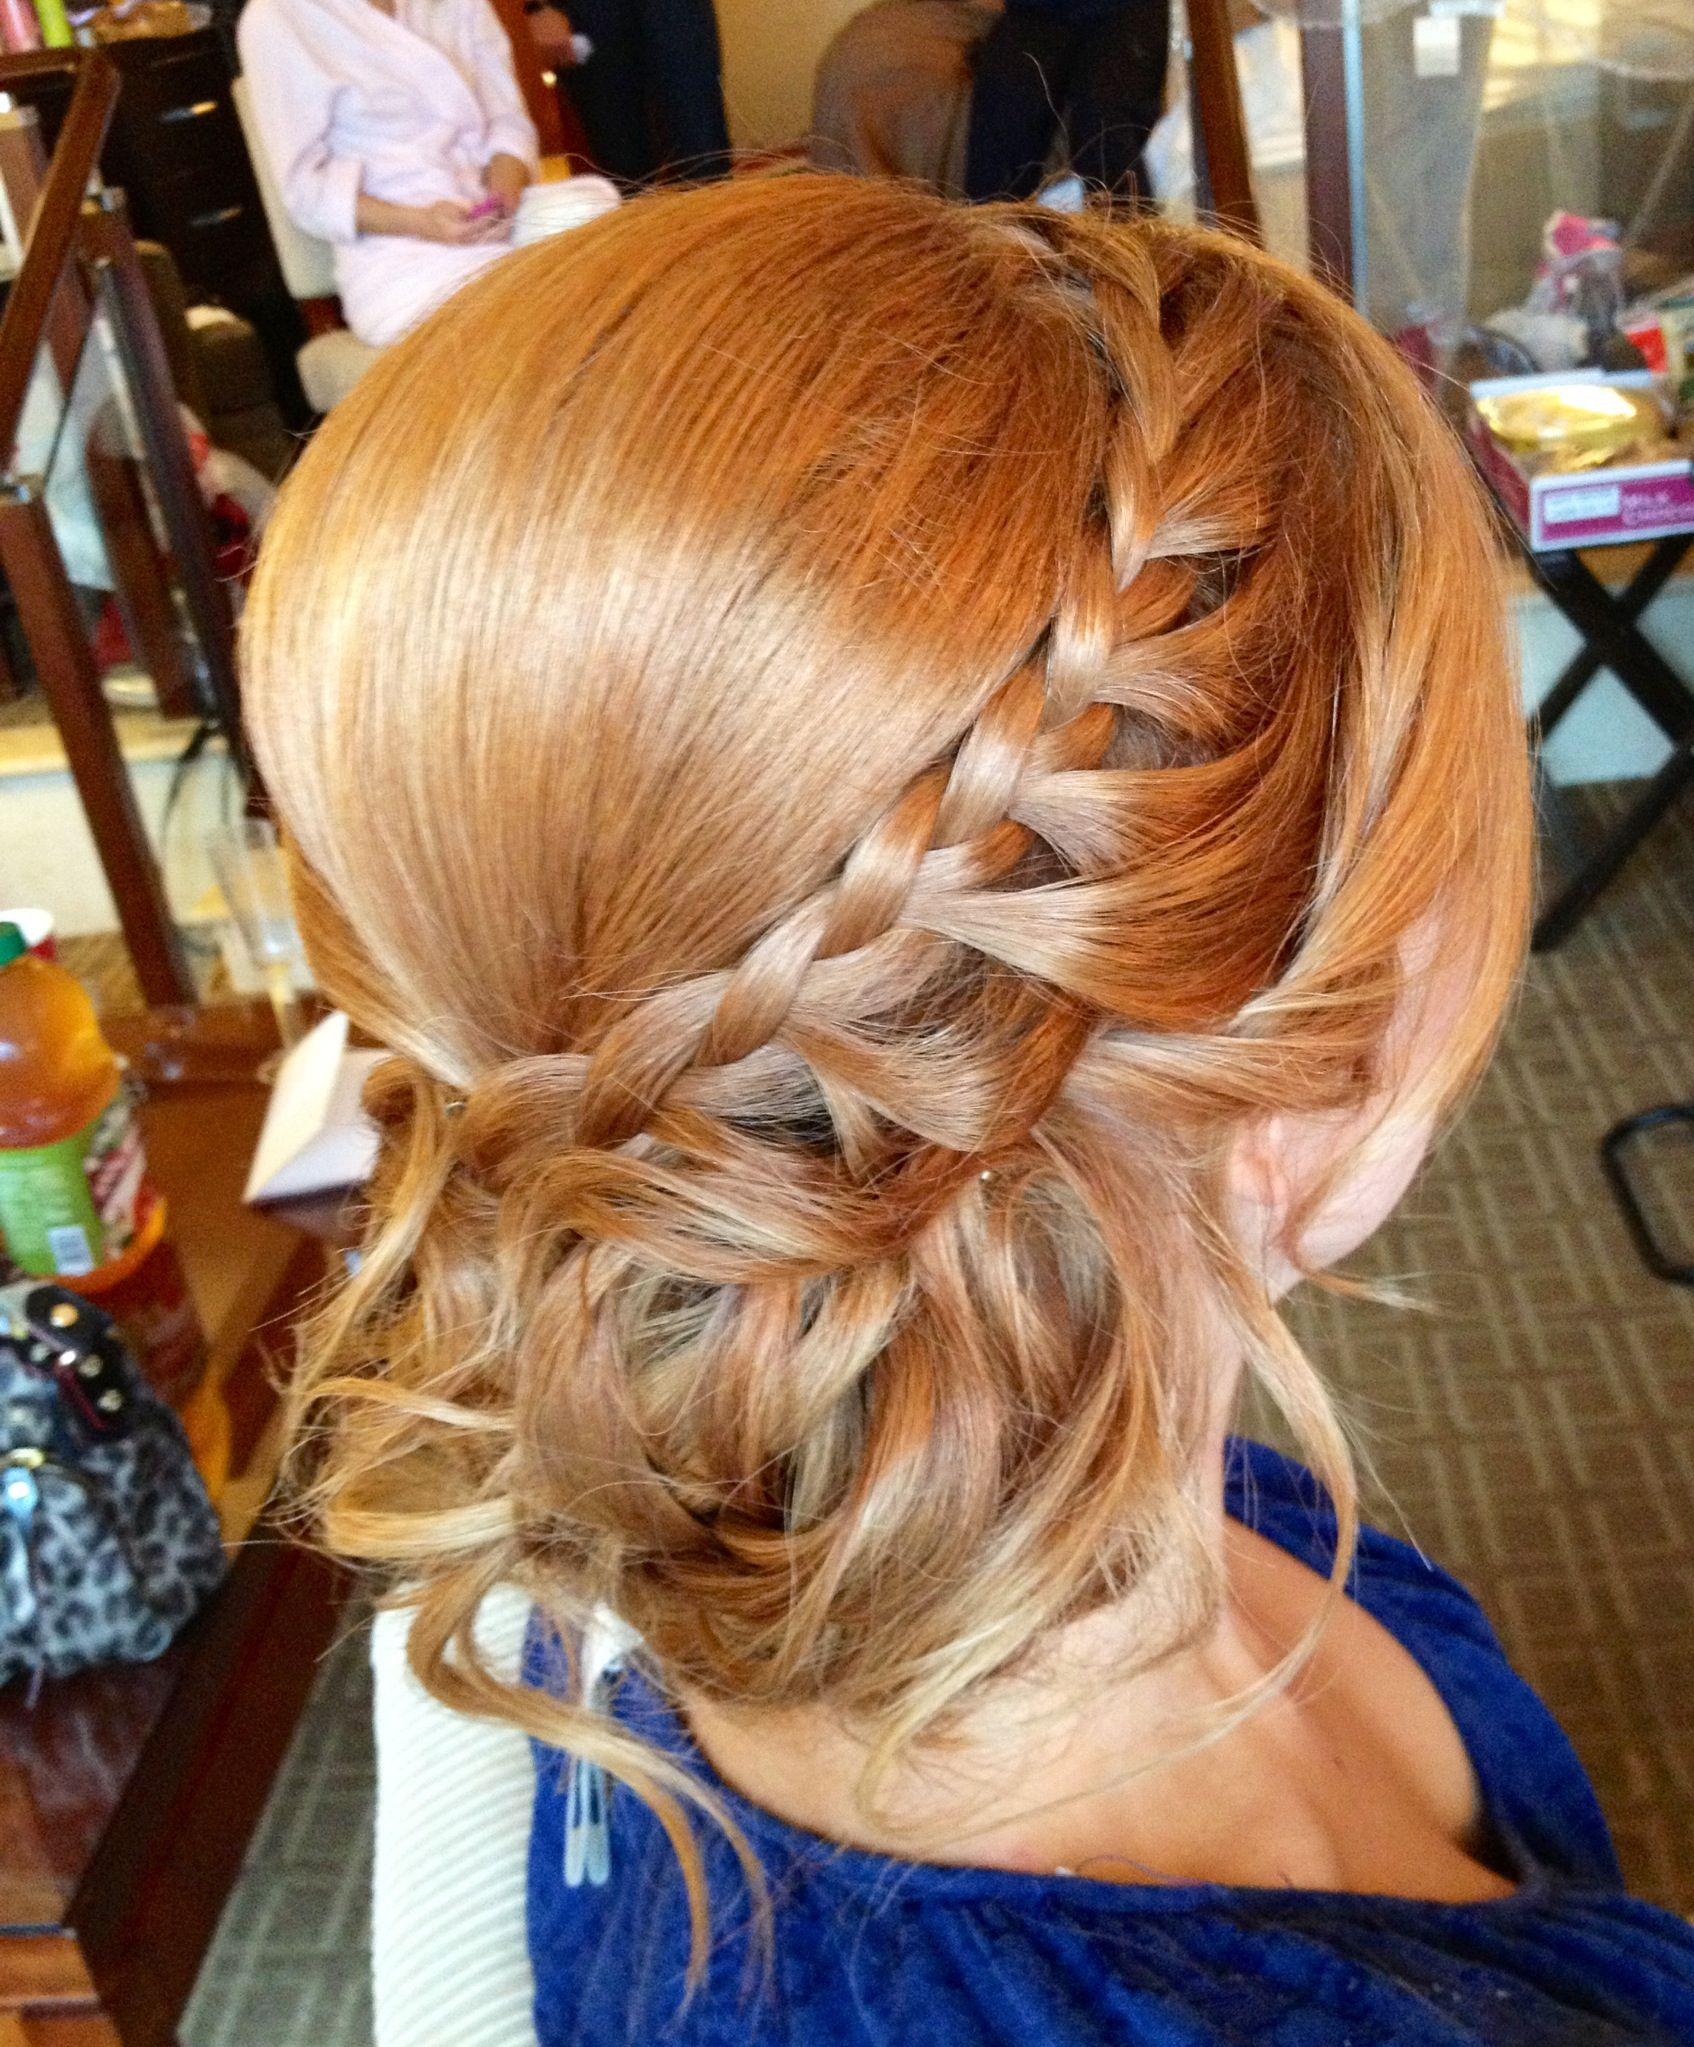 Hindu Bridal Hairstyles 14 Safe Hairdos For The Modern: Braided Side Bun (With Images)